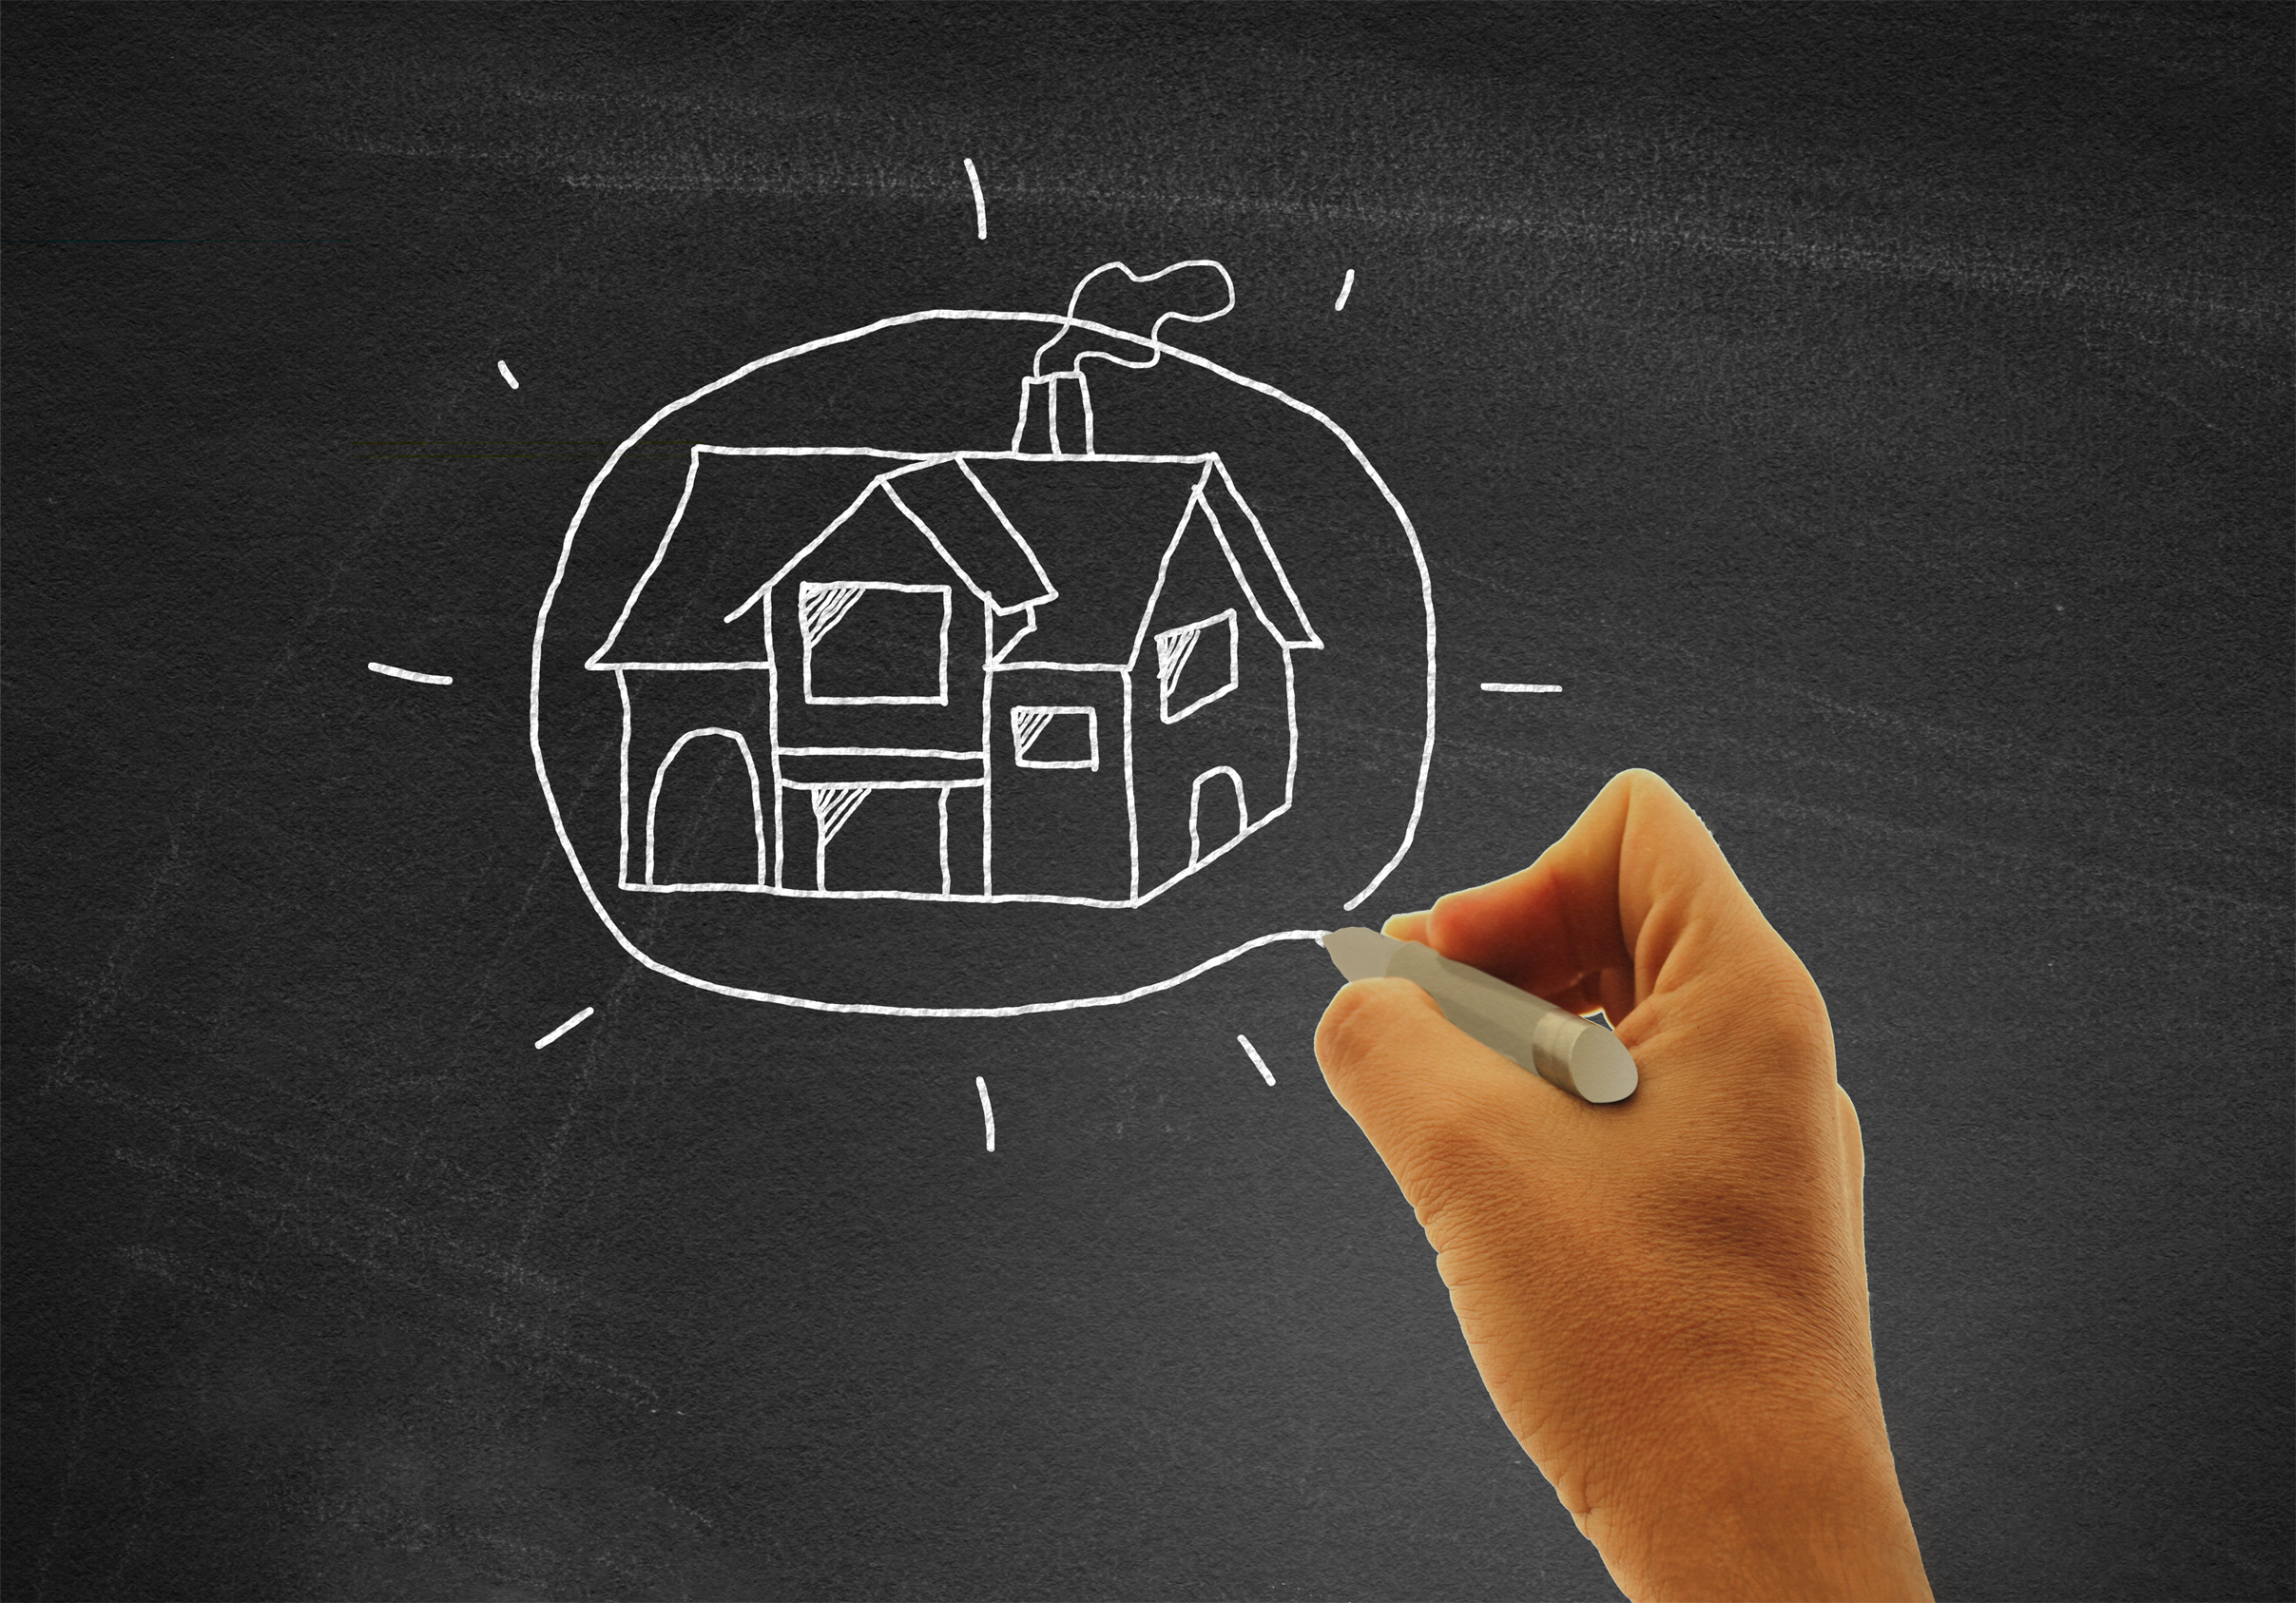 Hand drawing a house on blackboard - real estate and housing concept photo